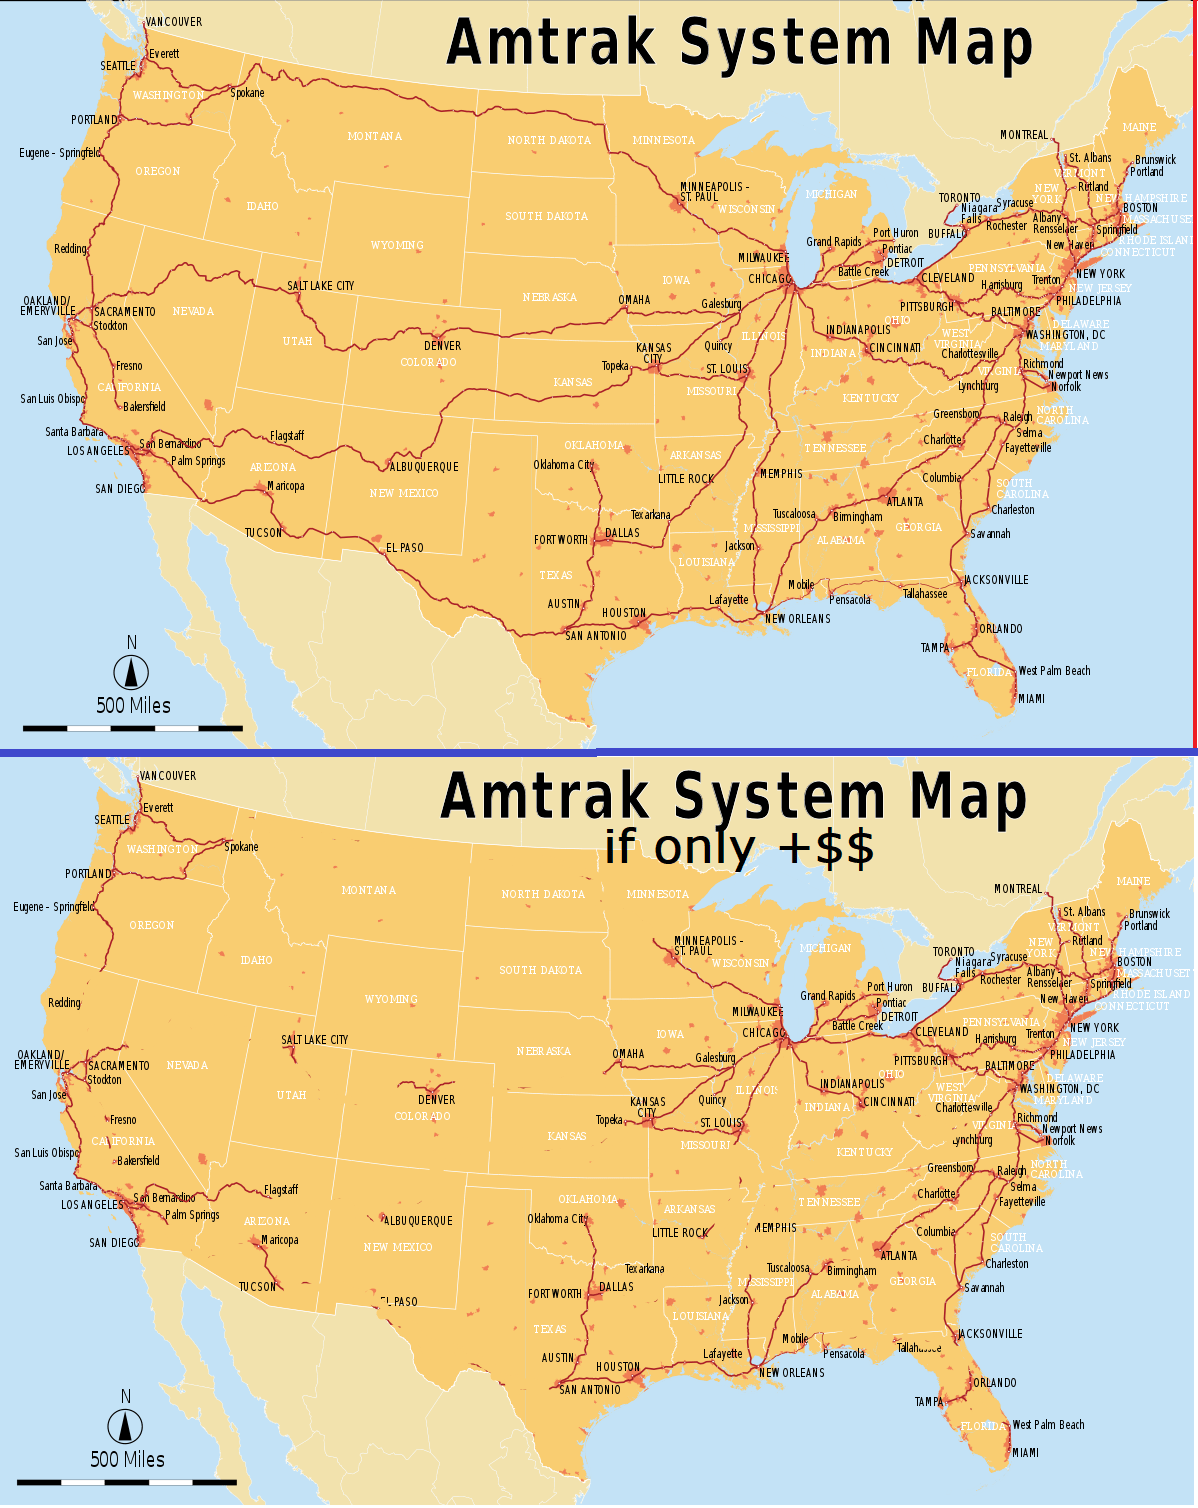 Amtrak Train Status Map : amtrak, train, status, System, Amtrak, (top), Versus, For-profit, (below), MapPorn